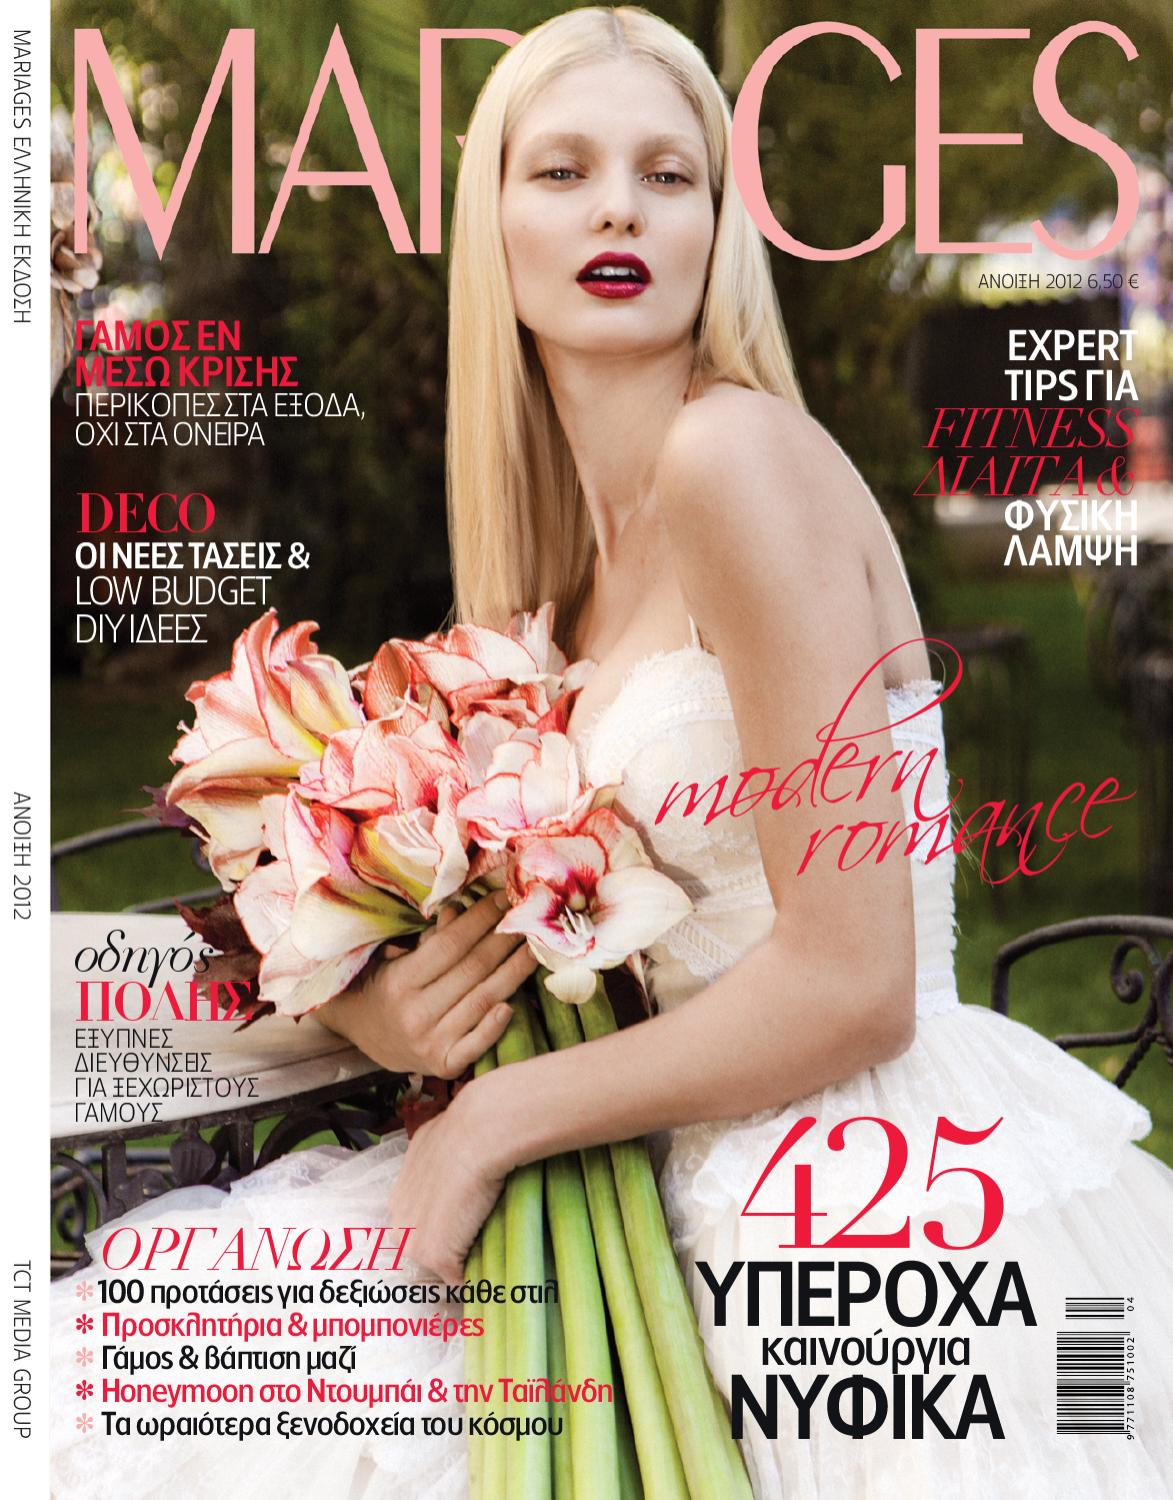 fbb40fe199c6 Mariages Άνοιξη 2012 by TCT MEDIA - issuu